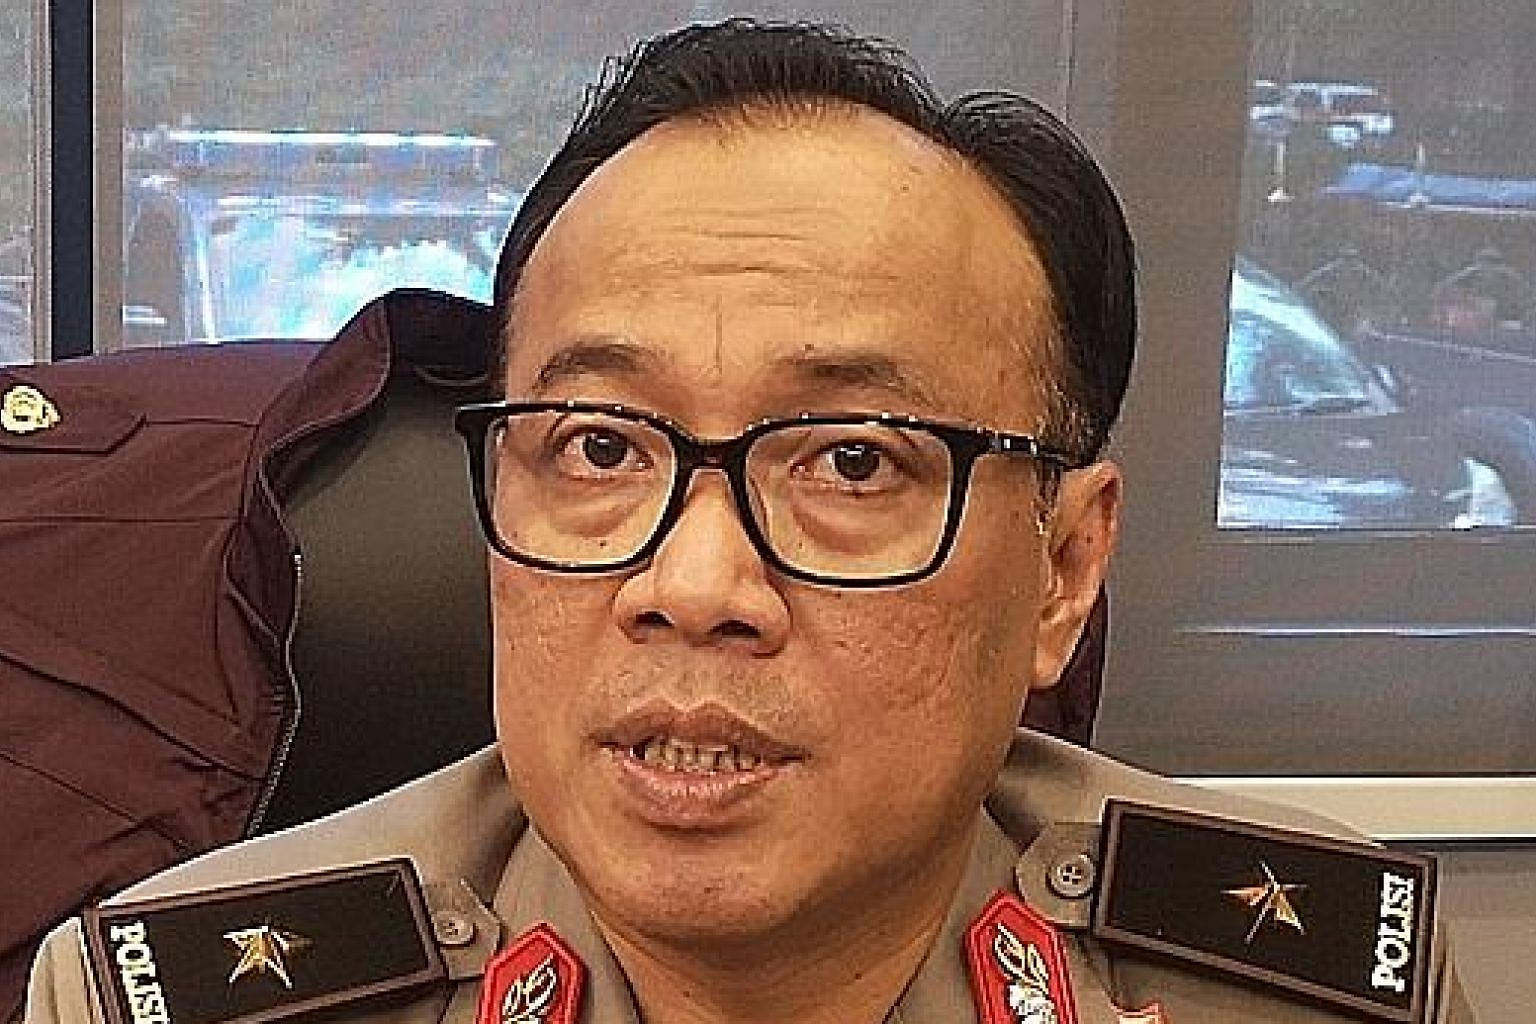 National police spokesman Dedi Prasetyo says Indonesia is stepping up surveillance and has analysed potential threats.